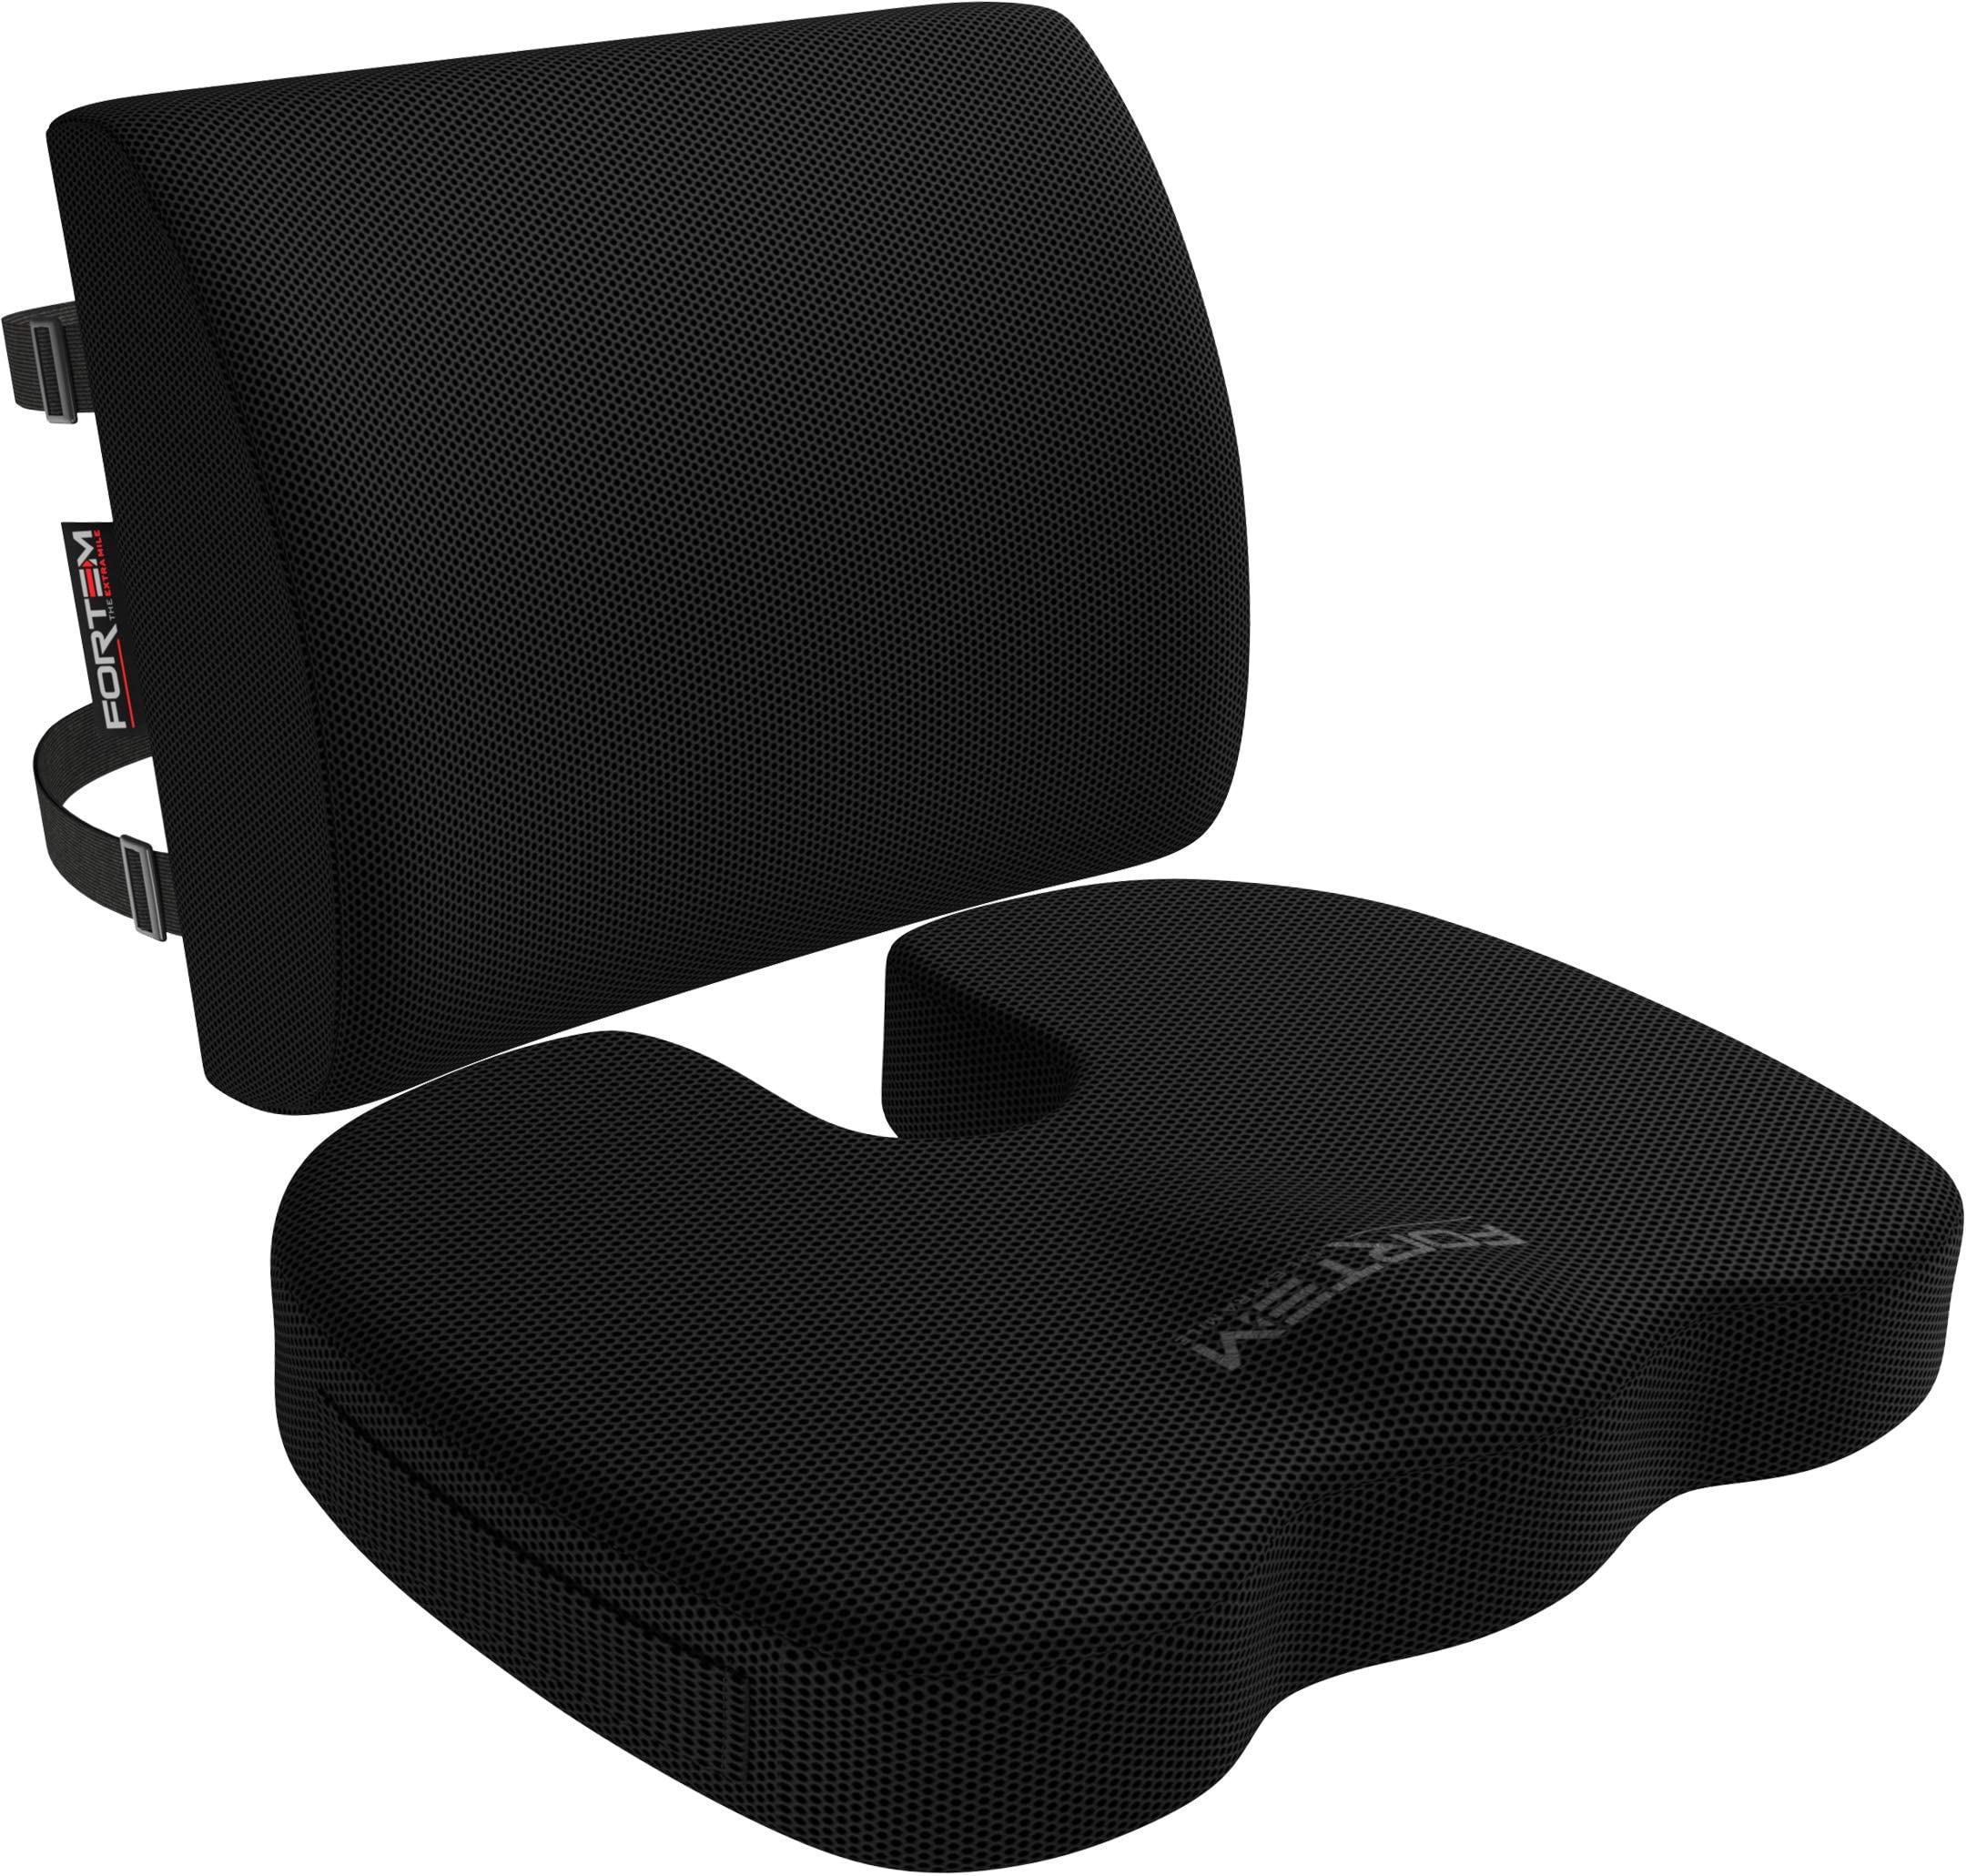 Booster Seat Cushion for Children Sports Seat Wheel Chair Cushion in wide selection of IndoorOutdoorFabrics